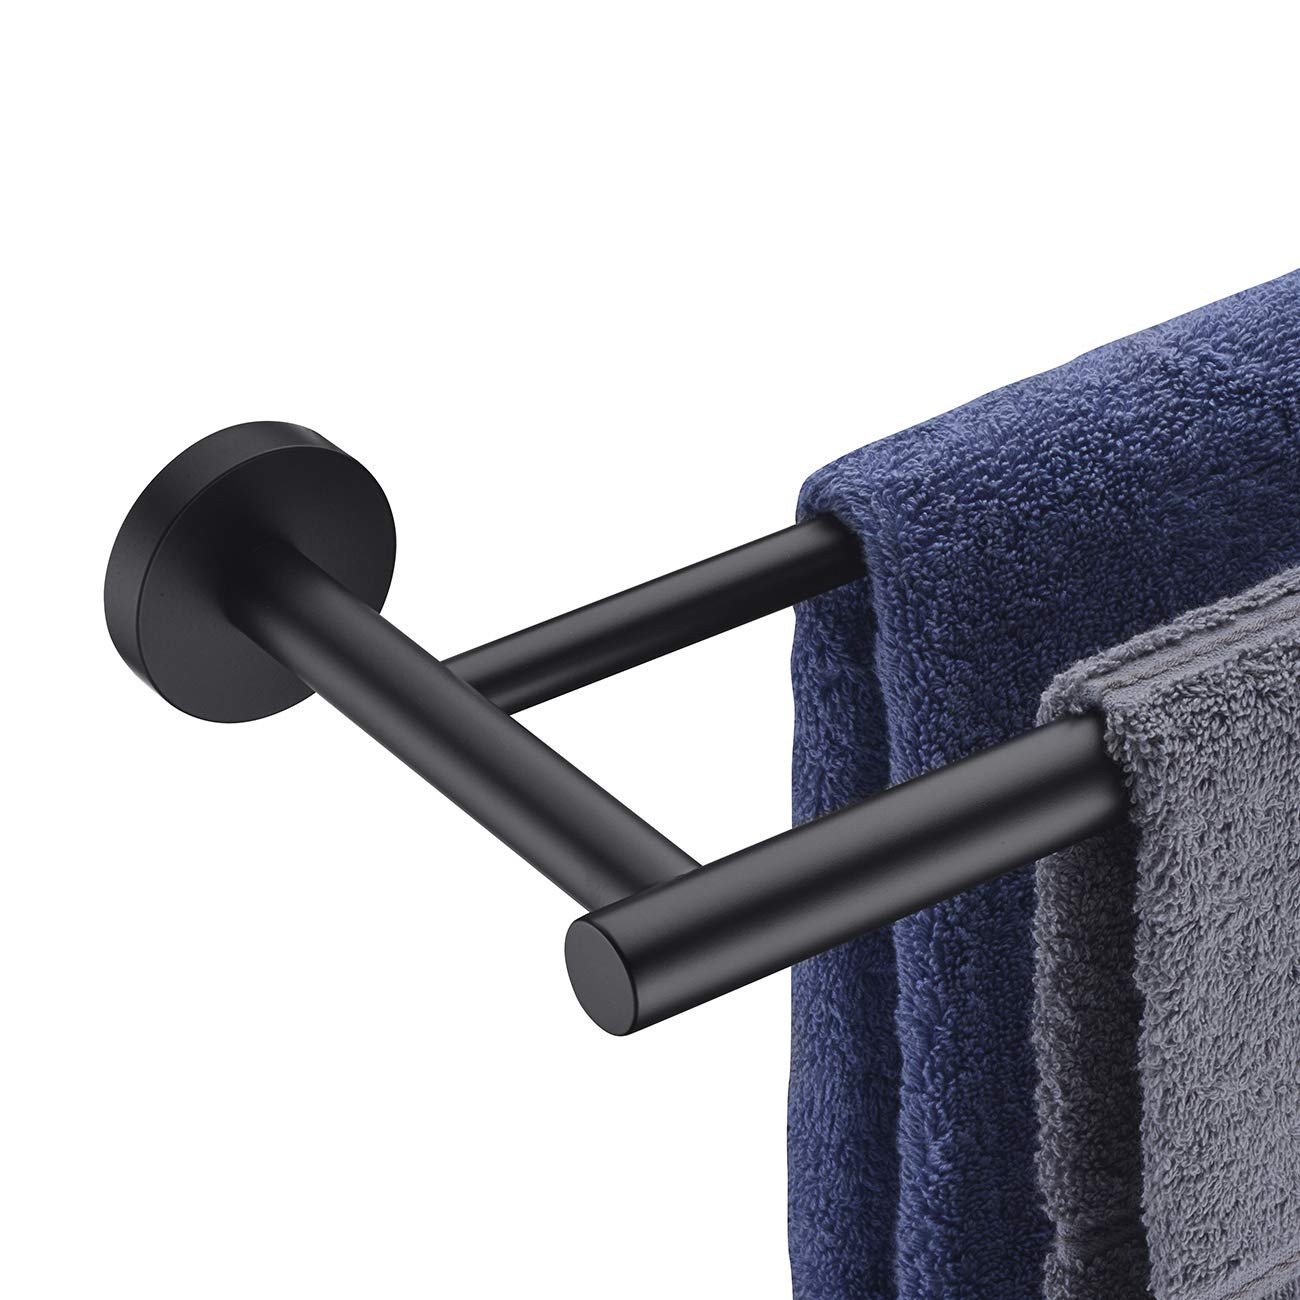 Hoooh Double Bath Towel Bar, 30-Inch Matte Black Stainless Steel Hand Towel Rack for Bathroom, A102L75-BK by Hoooh